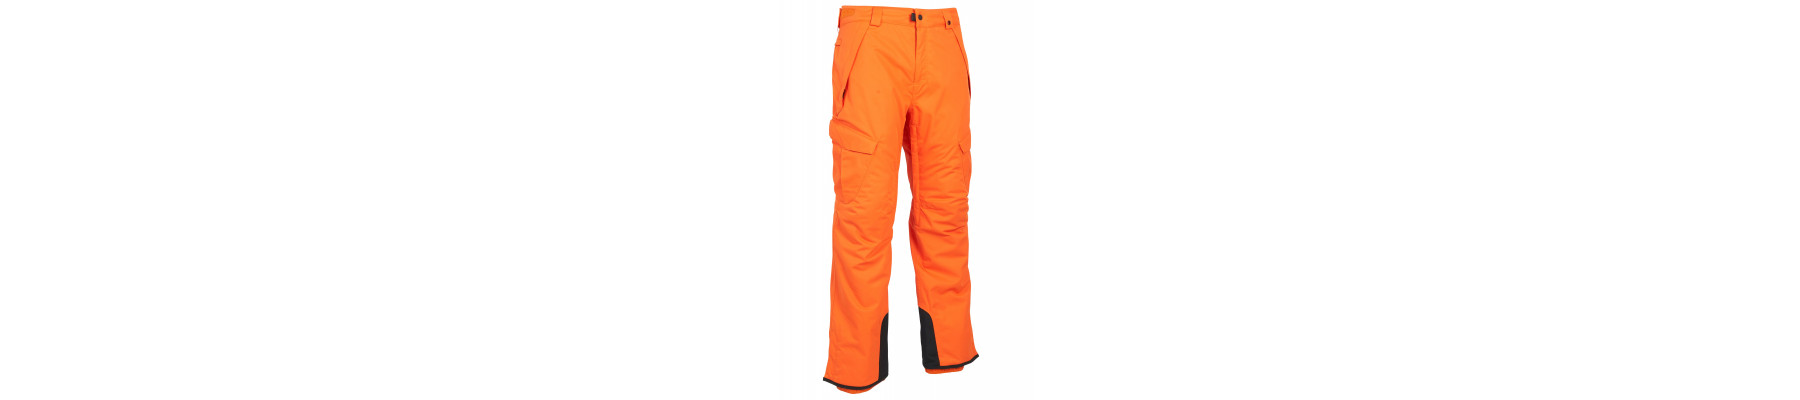 686 INFINITY INSULATED CARGO PANT Solar orange 10K/10K/-12'C